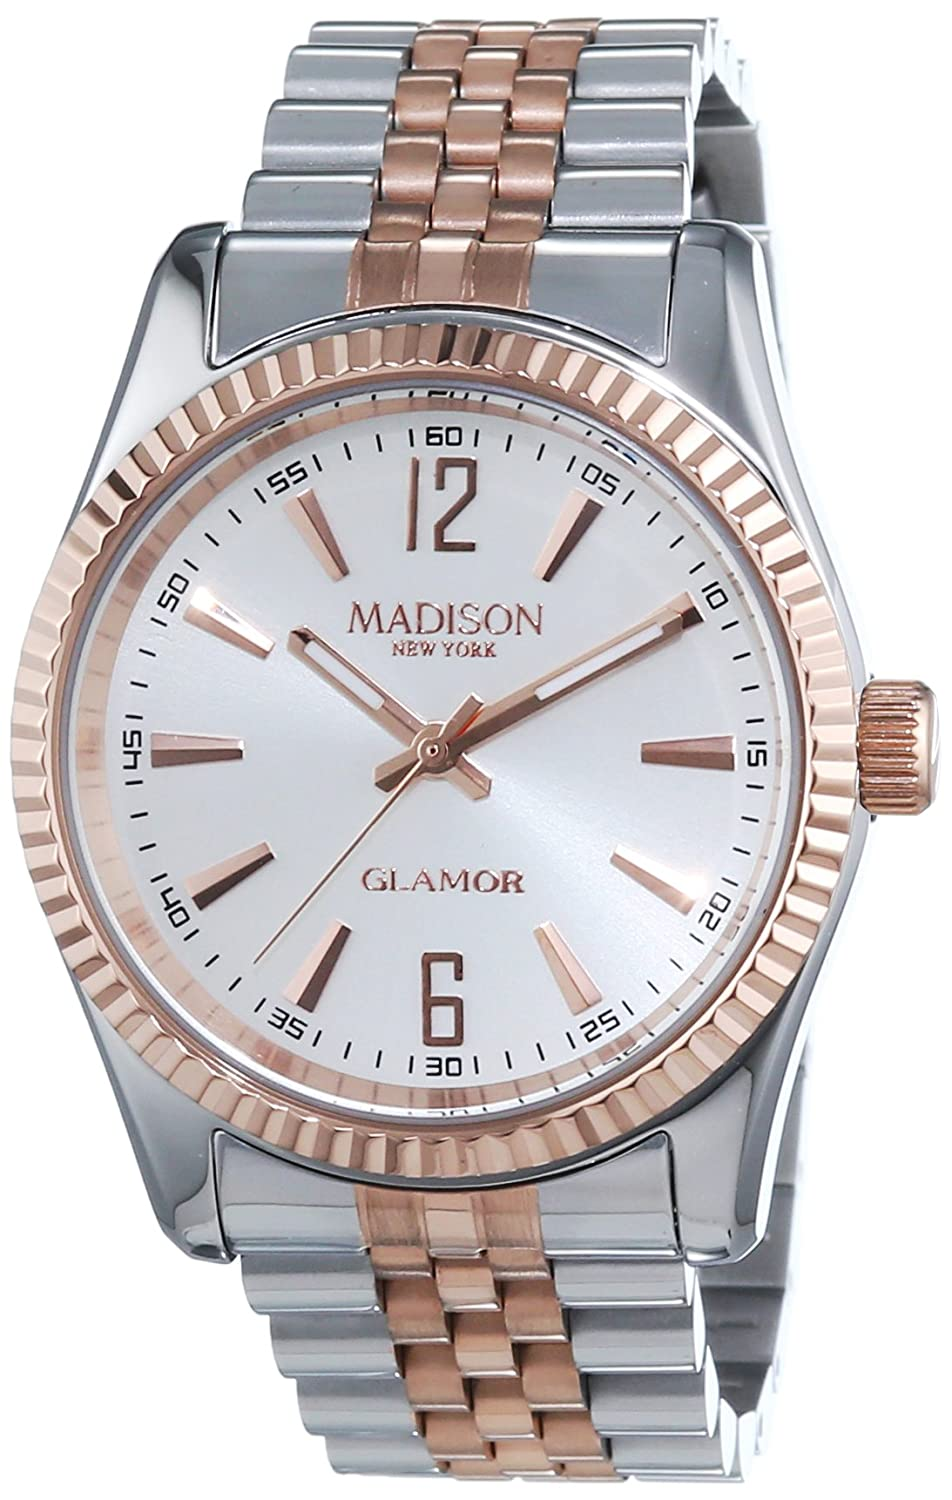 MADISON NEW YORK Unisex-Armbanduhr GLAMOR Analog Quarz Edelstahl beschichtet L4791C3